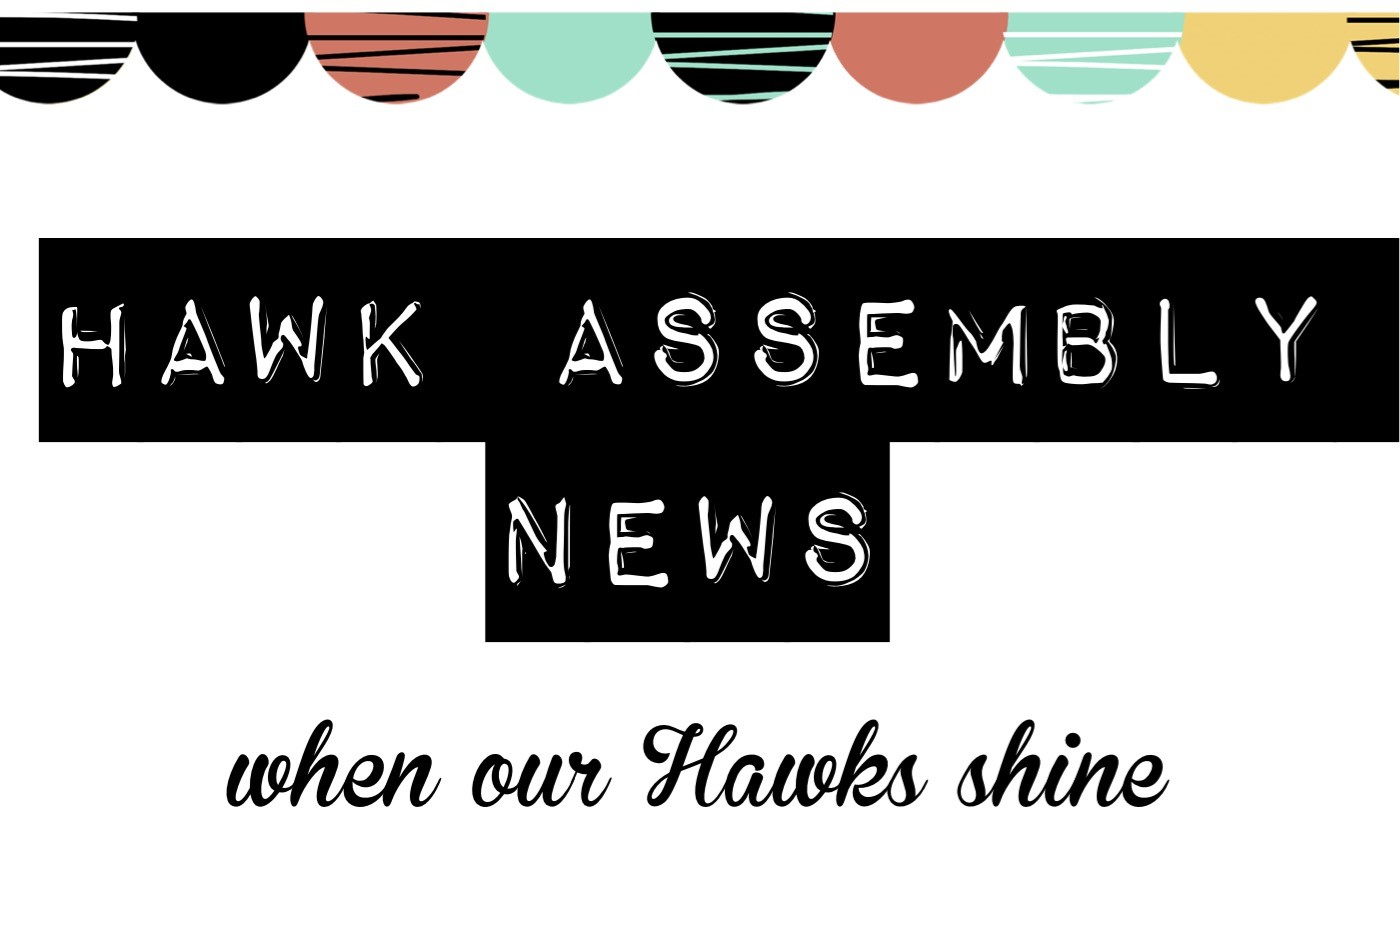 Hawk Assembly News